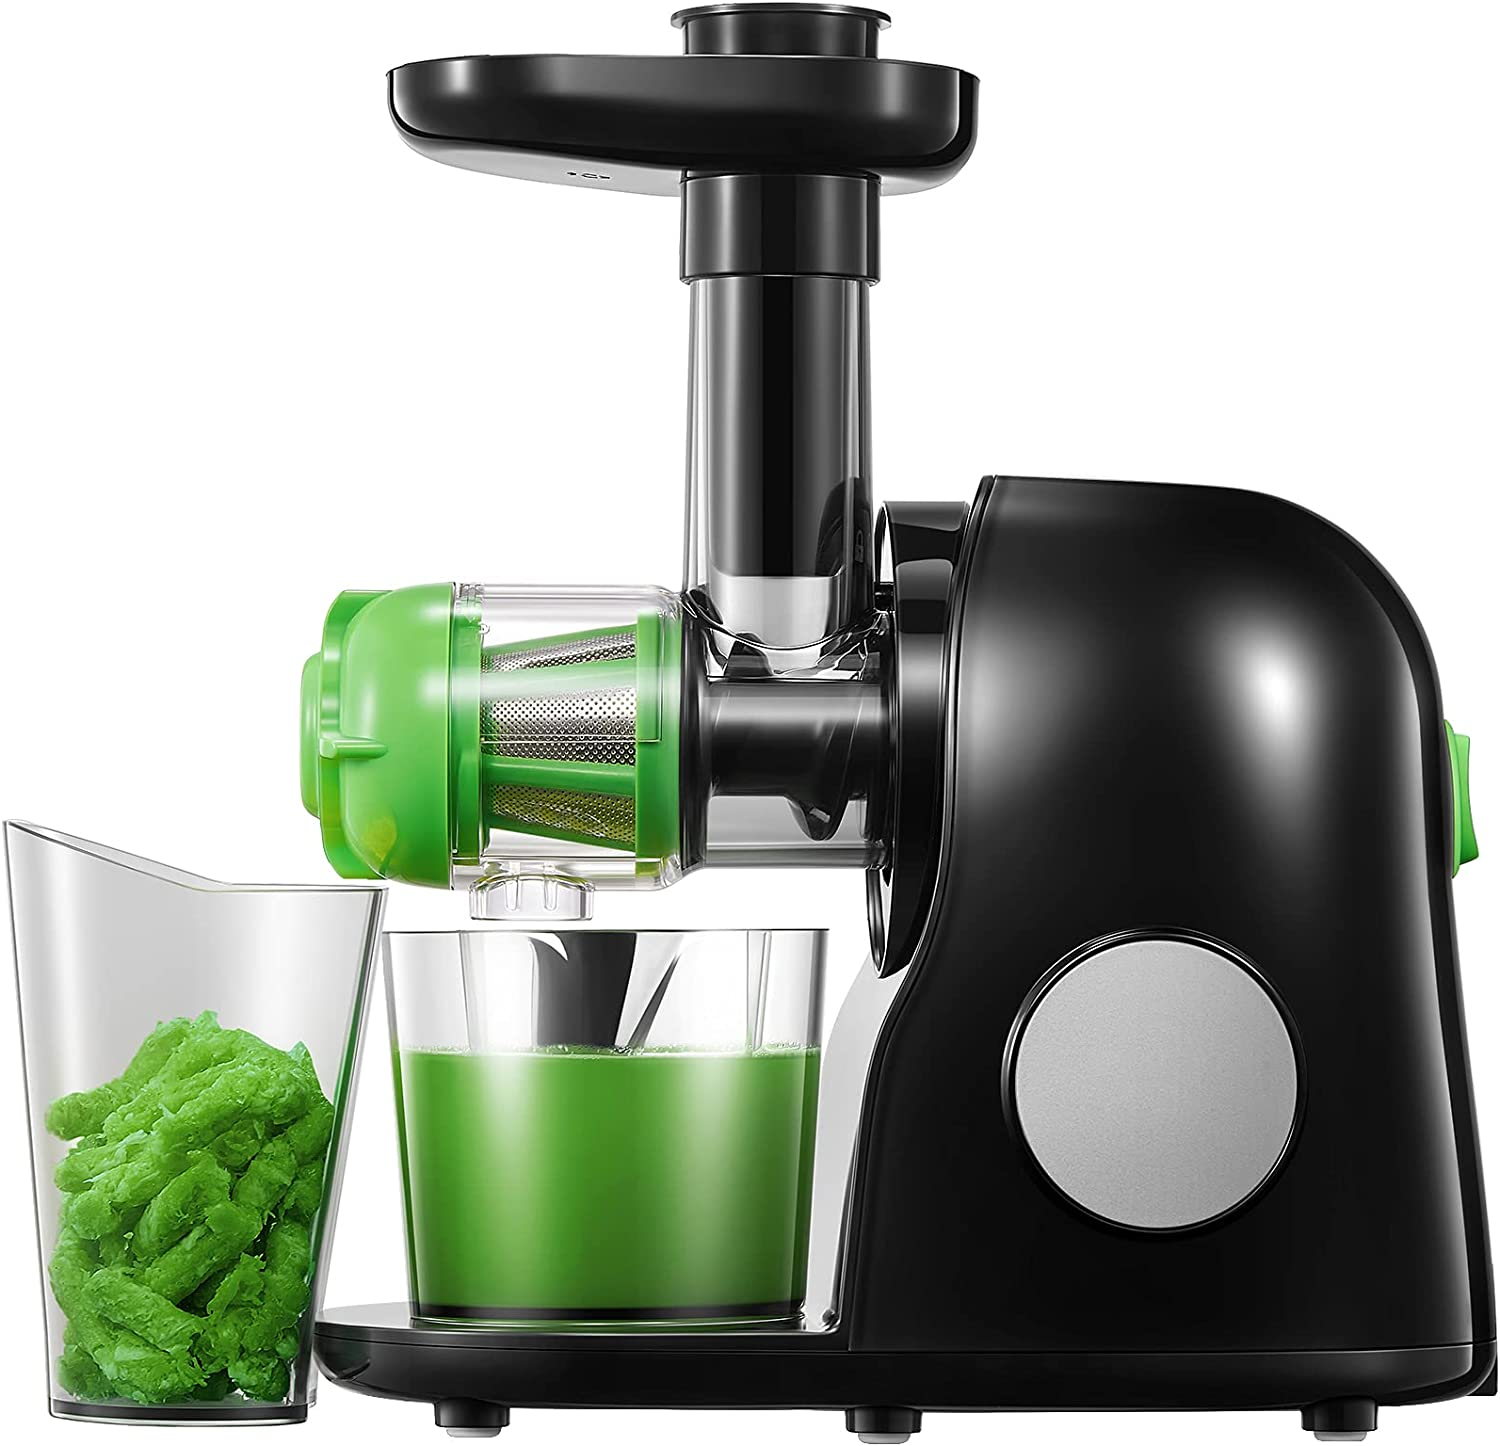 Juicer Machines, Slow Masticating Juicer Extractor Easy to Clean, Quiet Motor & Reverse Function, BPA-Free, Cold Press Juicer with Brush, Juice Recipes for Vegetables and Fruits, Classic Black